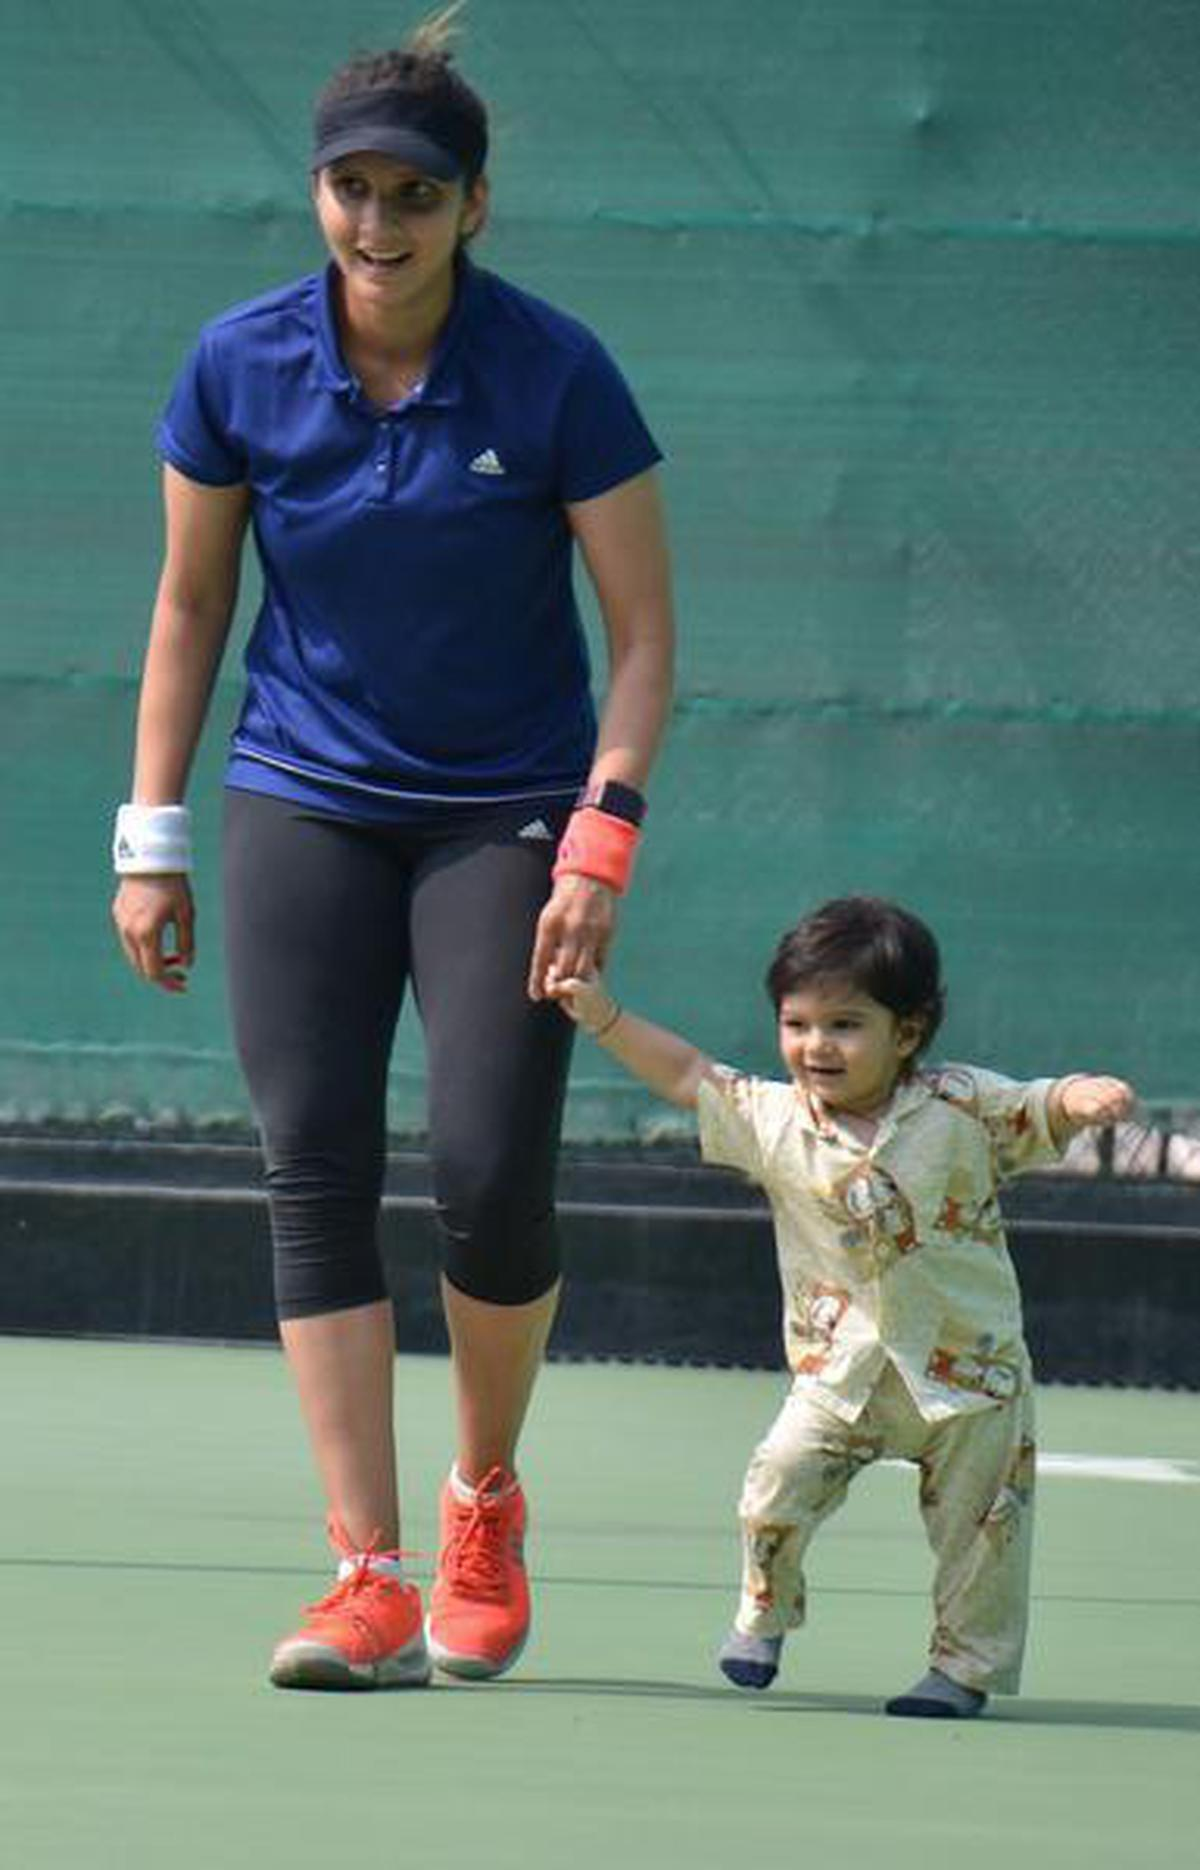 I need to think as a parent and not just an athlete: Sania Mirza